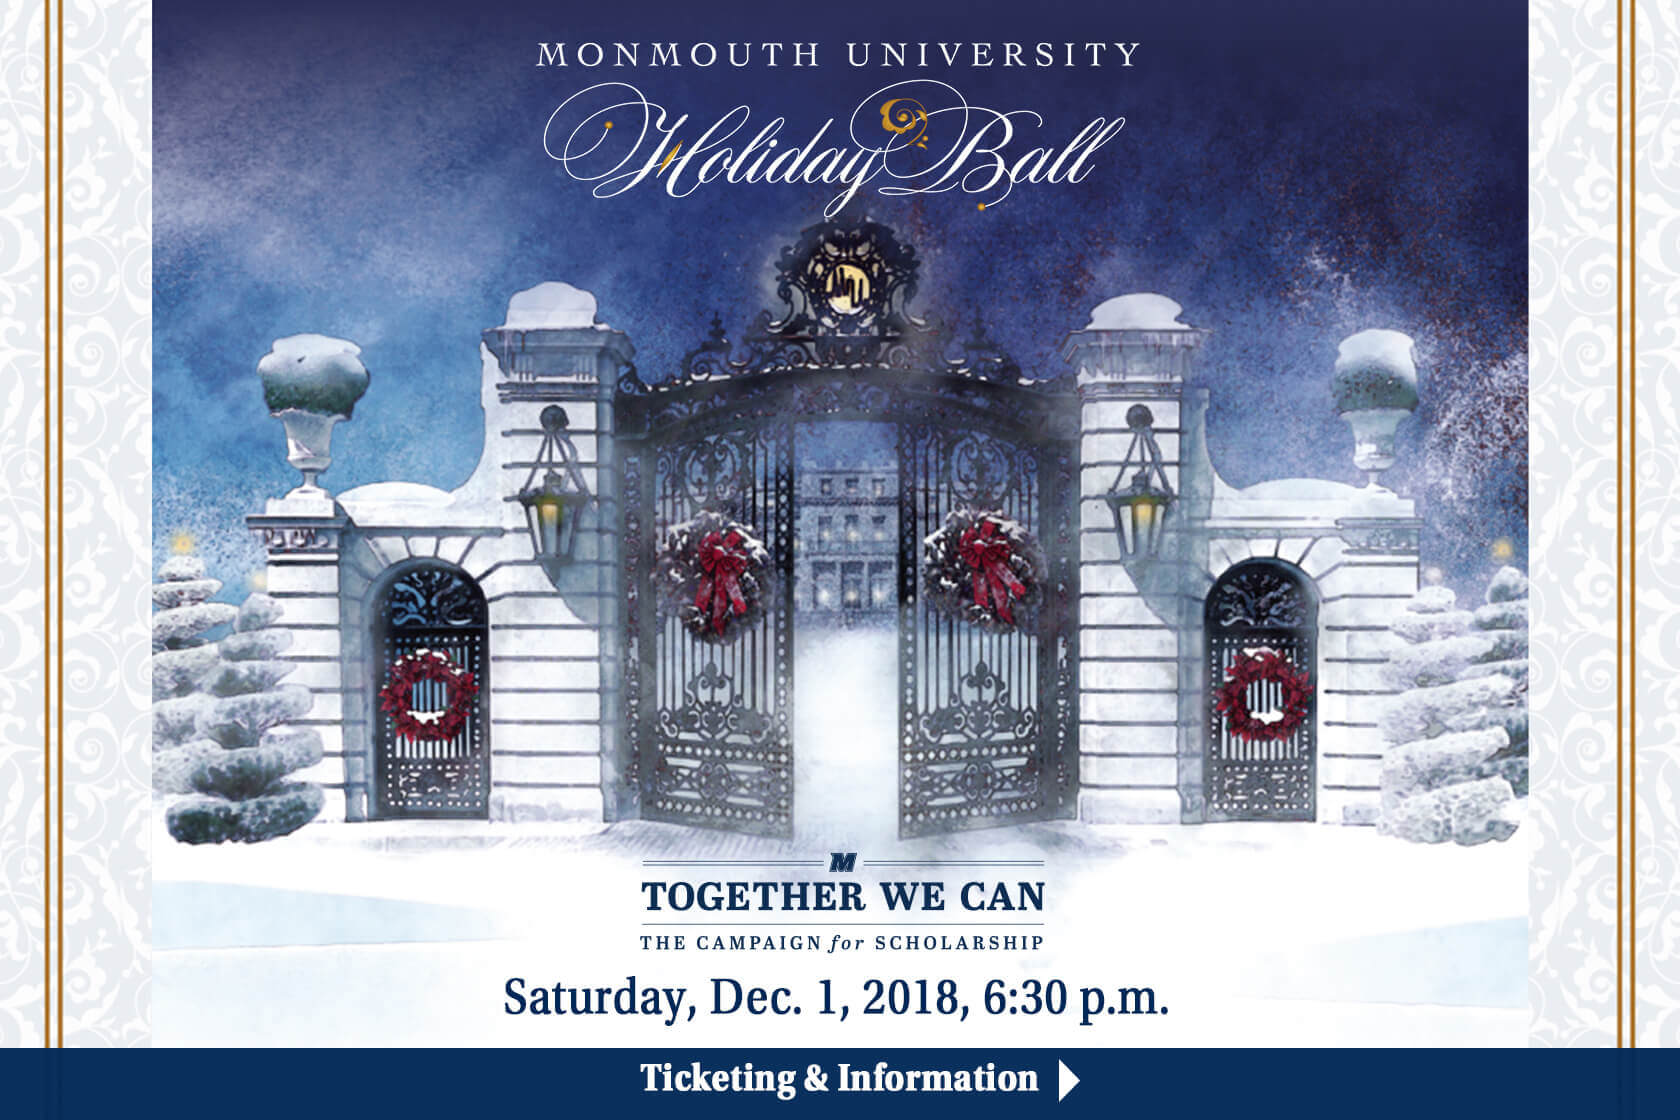 The Holiday Ball will take place on Saturday, December First, at 6:30 p.m. Learn more about ticketing and details for this event.